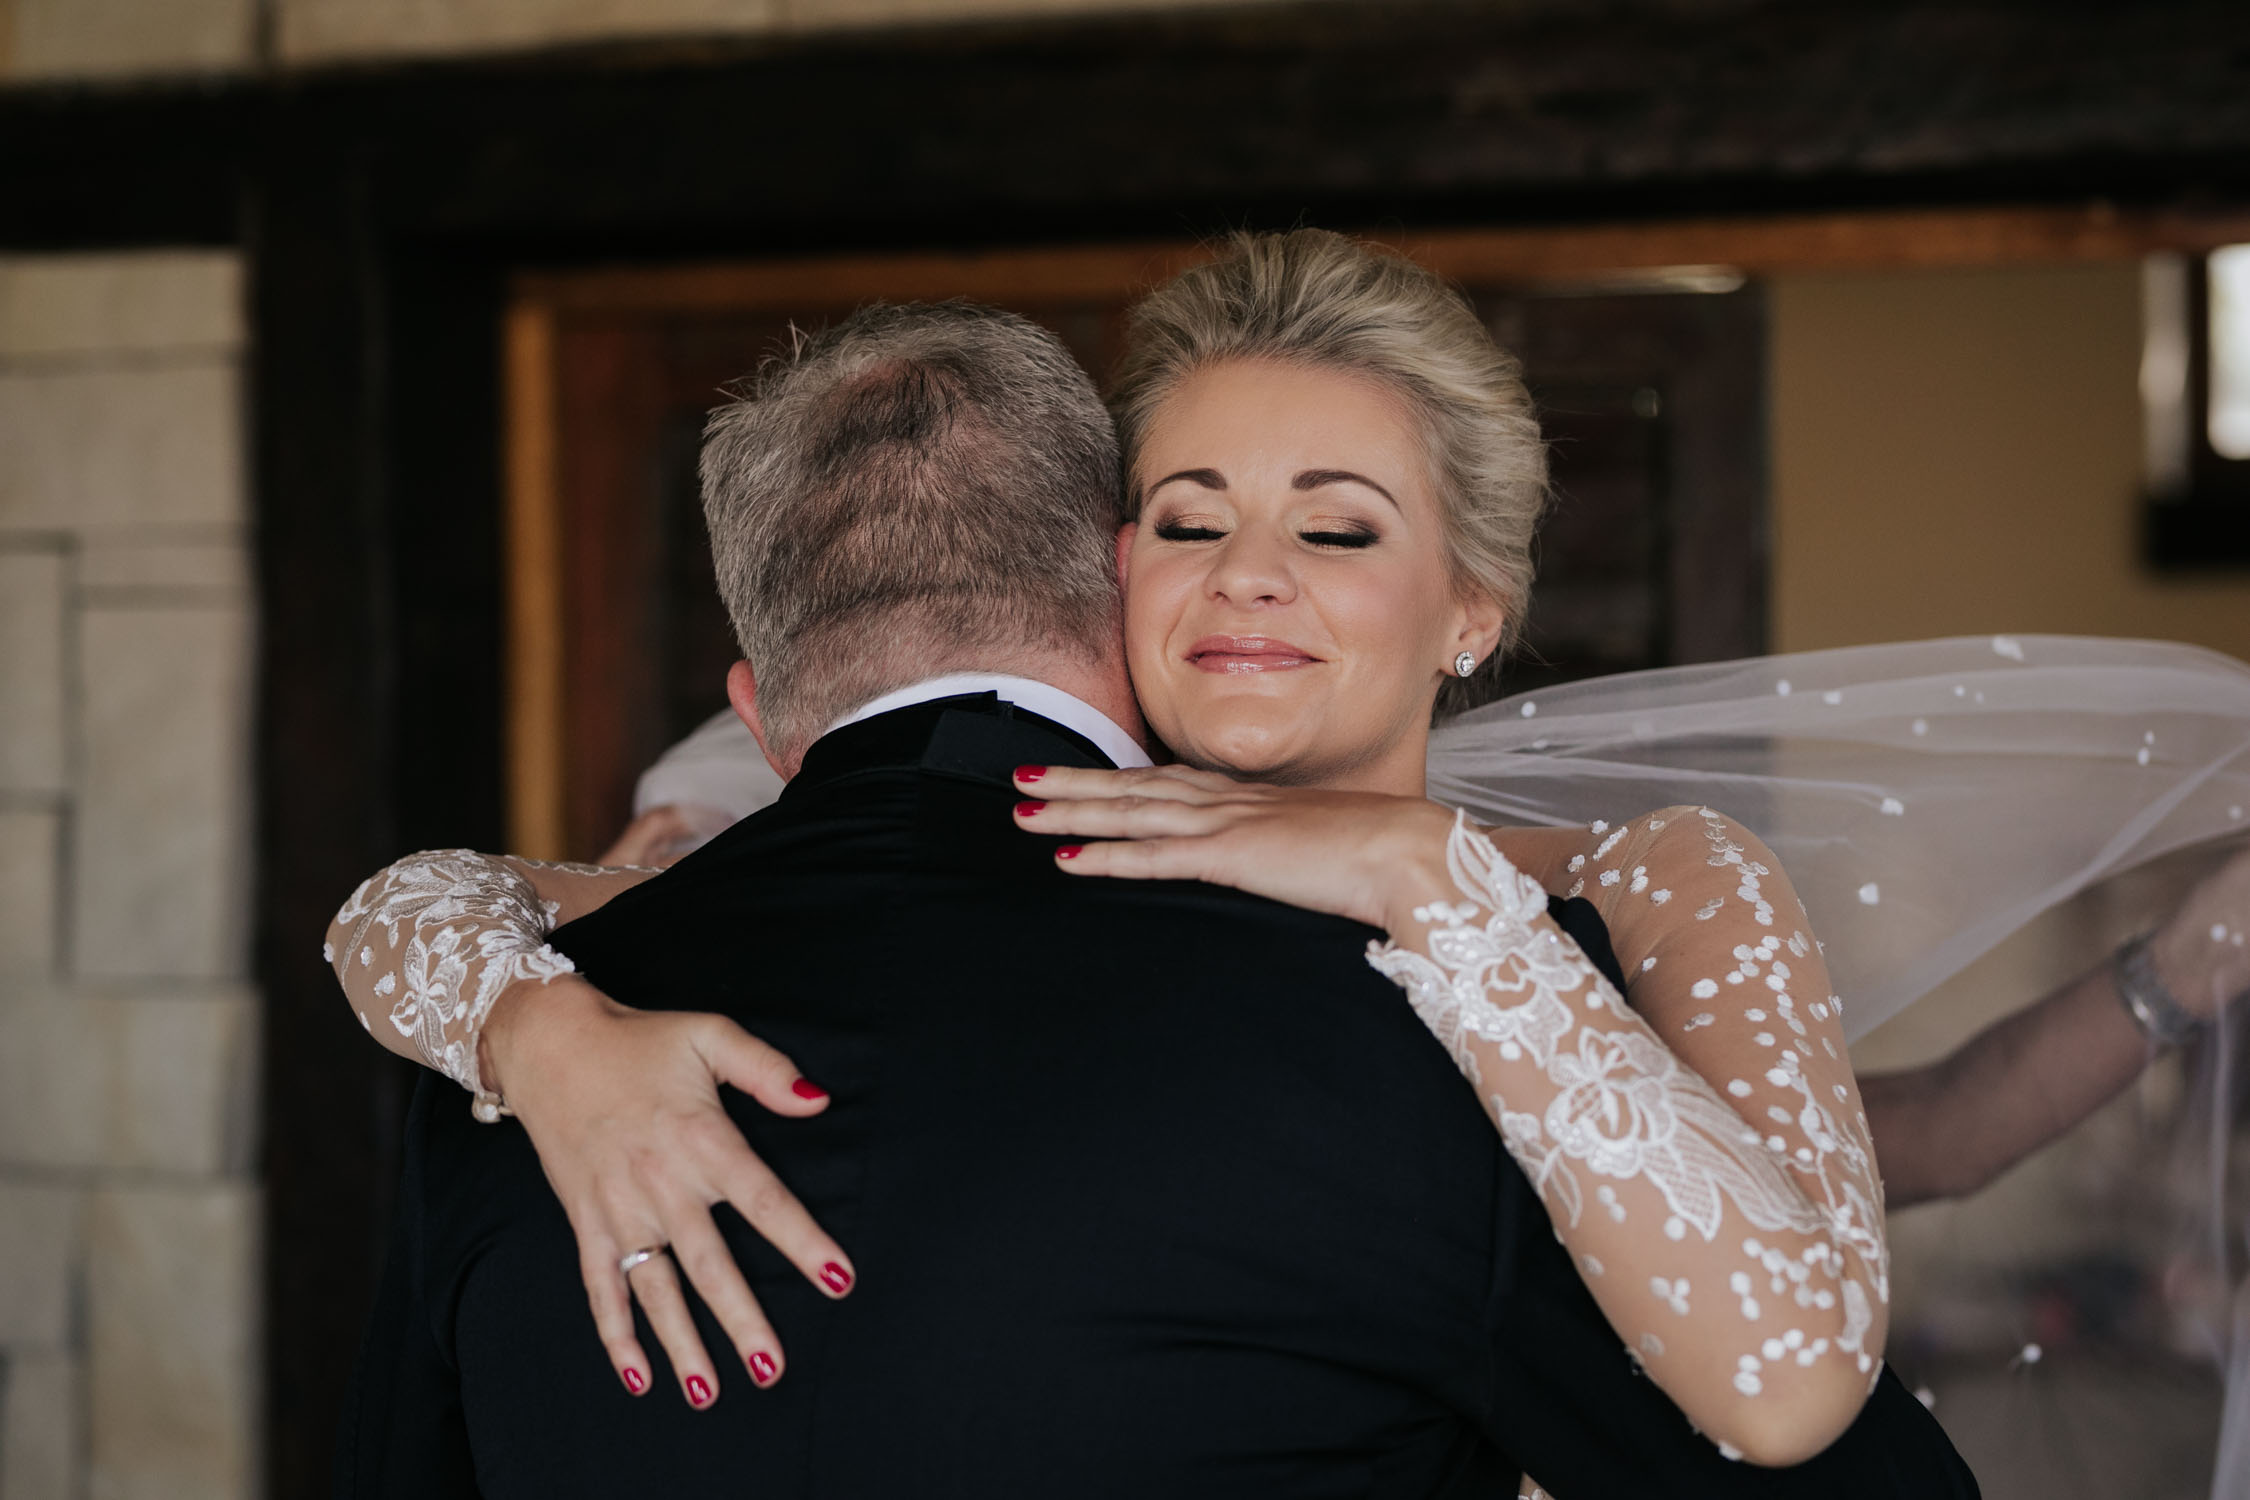 Emotional moment of bride and bride's father hugging when he sees her for the first time